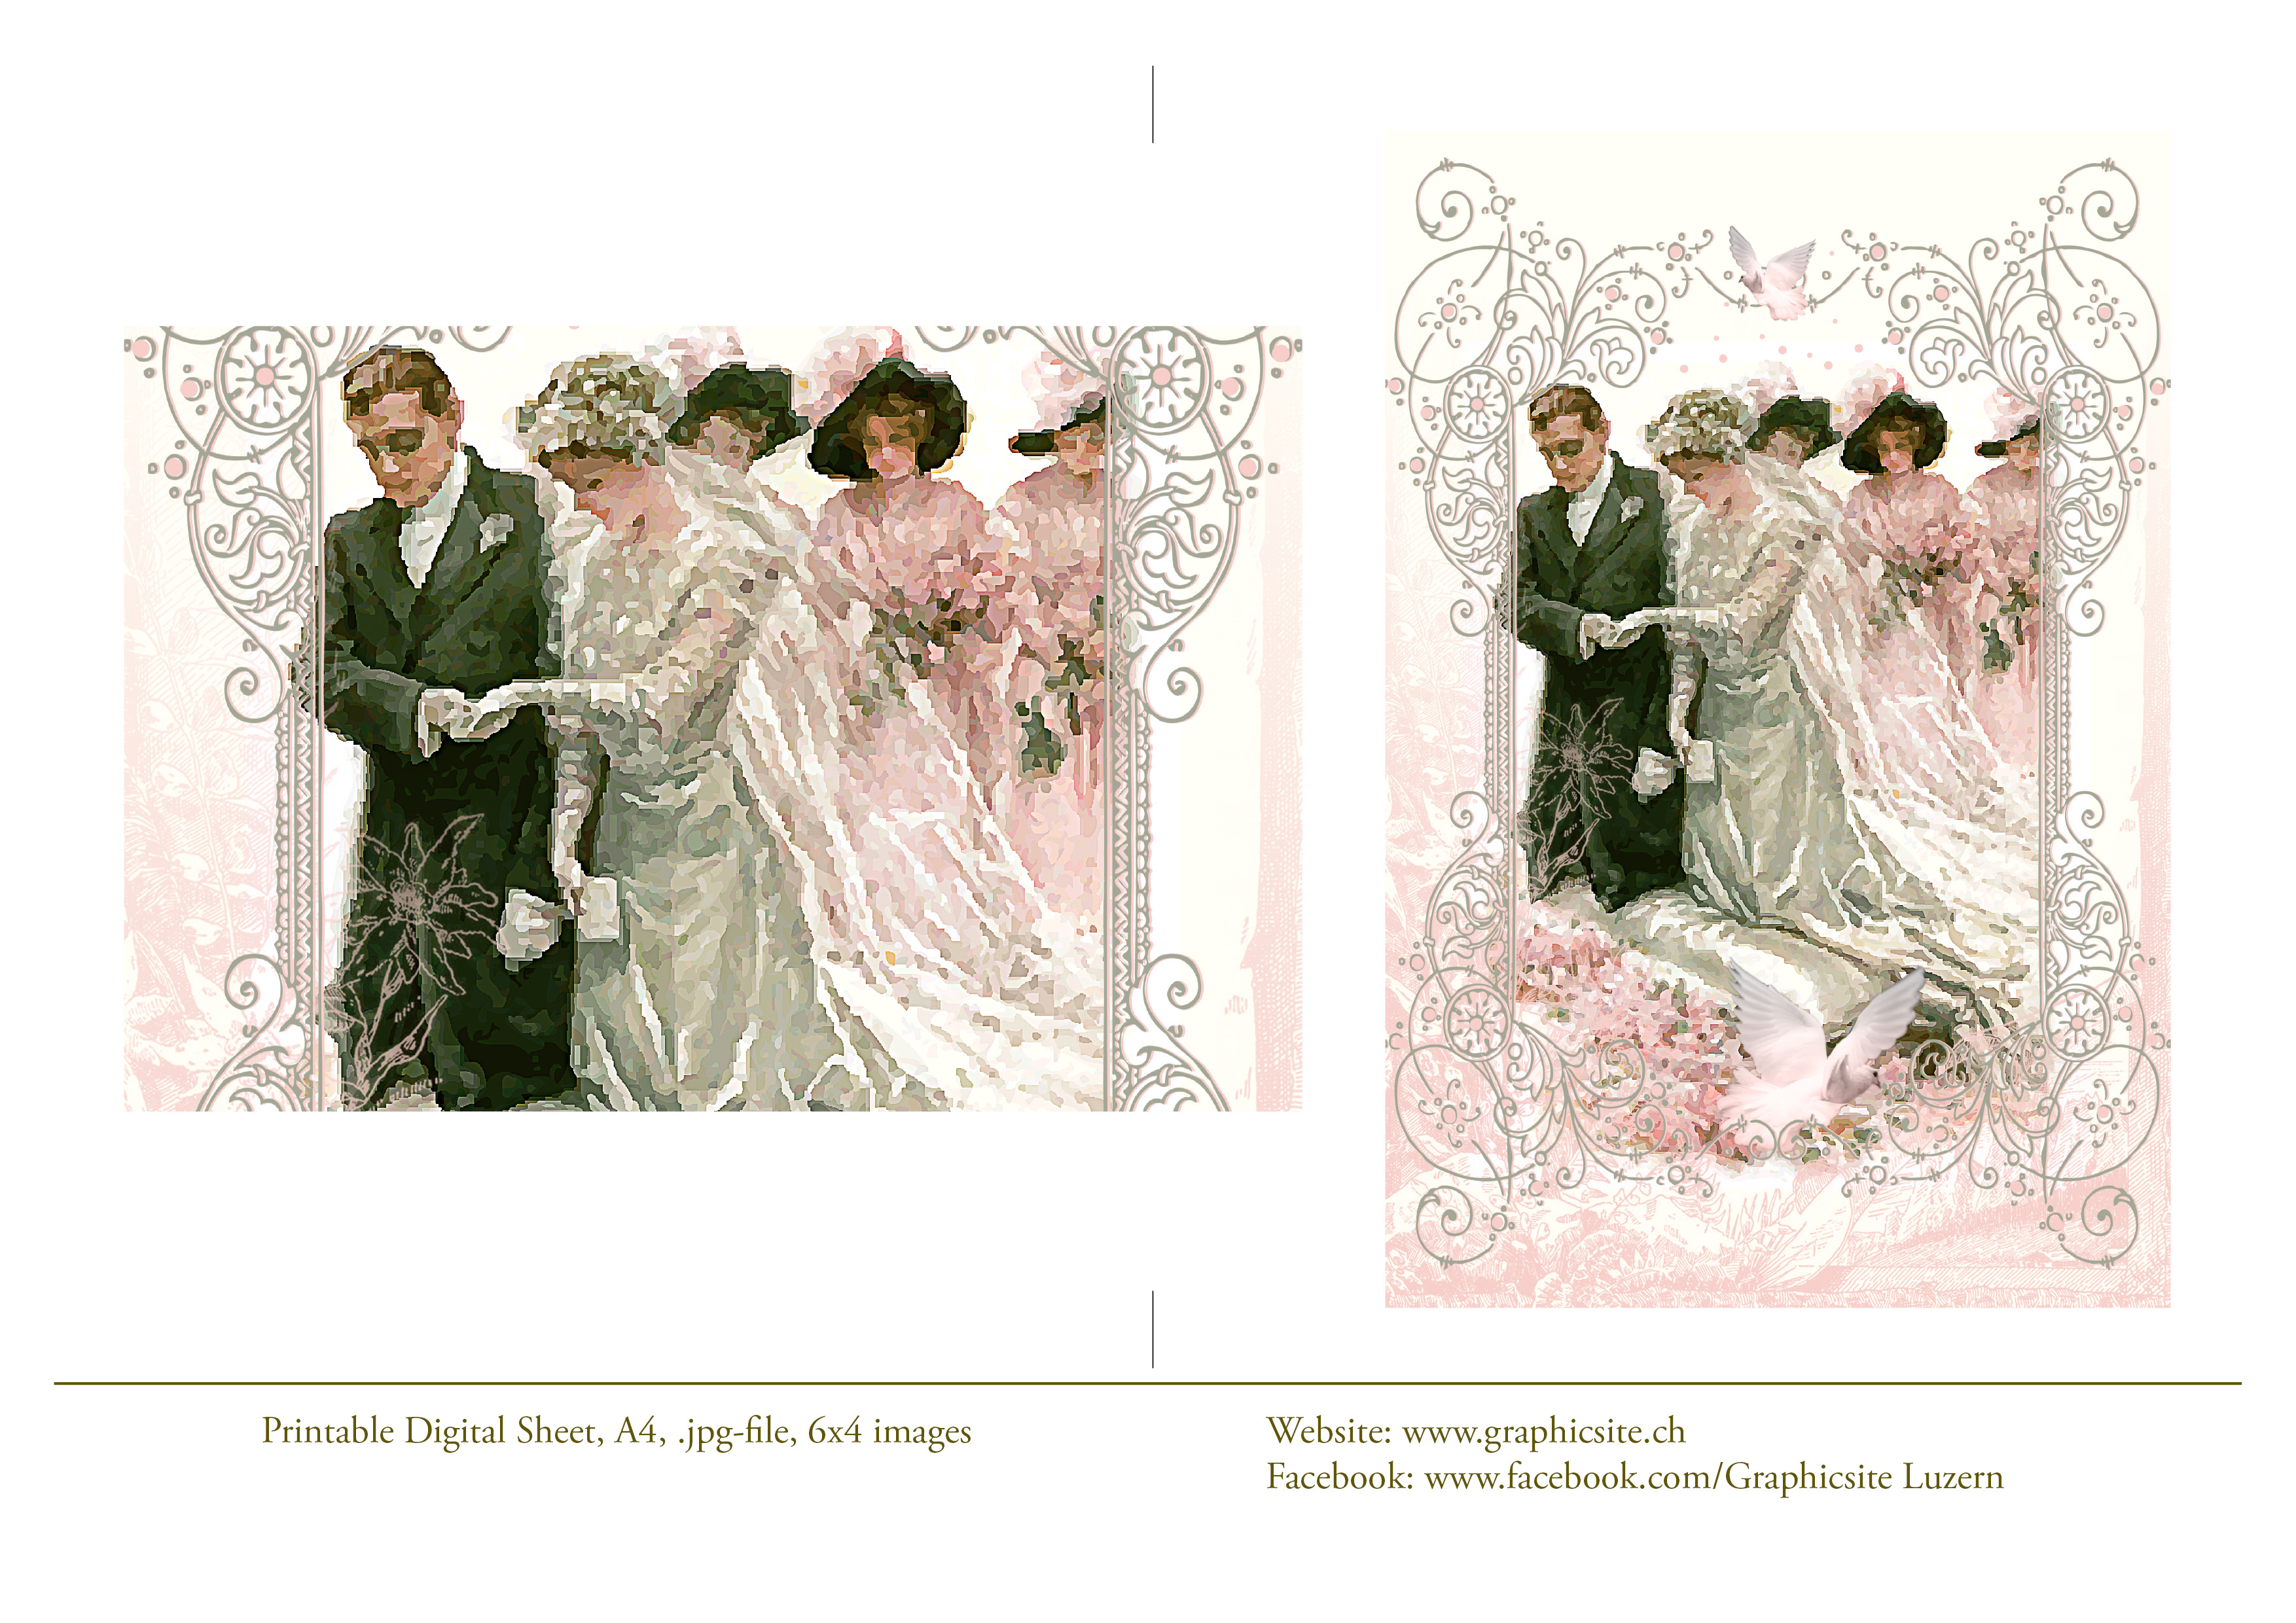 Printable Digital Sheet - 6x4 images - Victorian Wedding